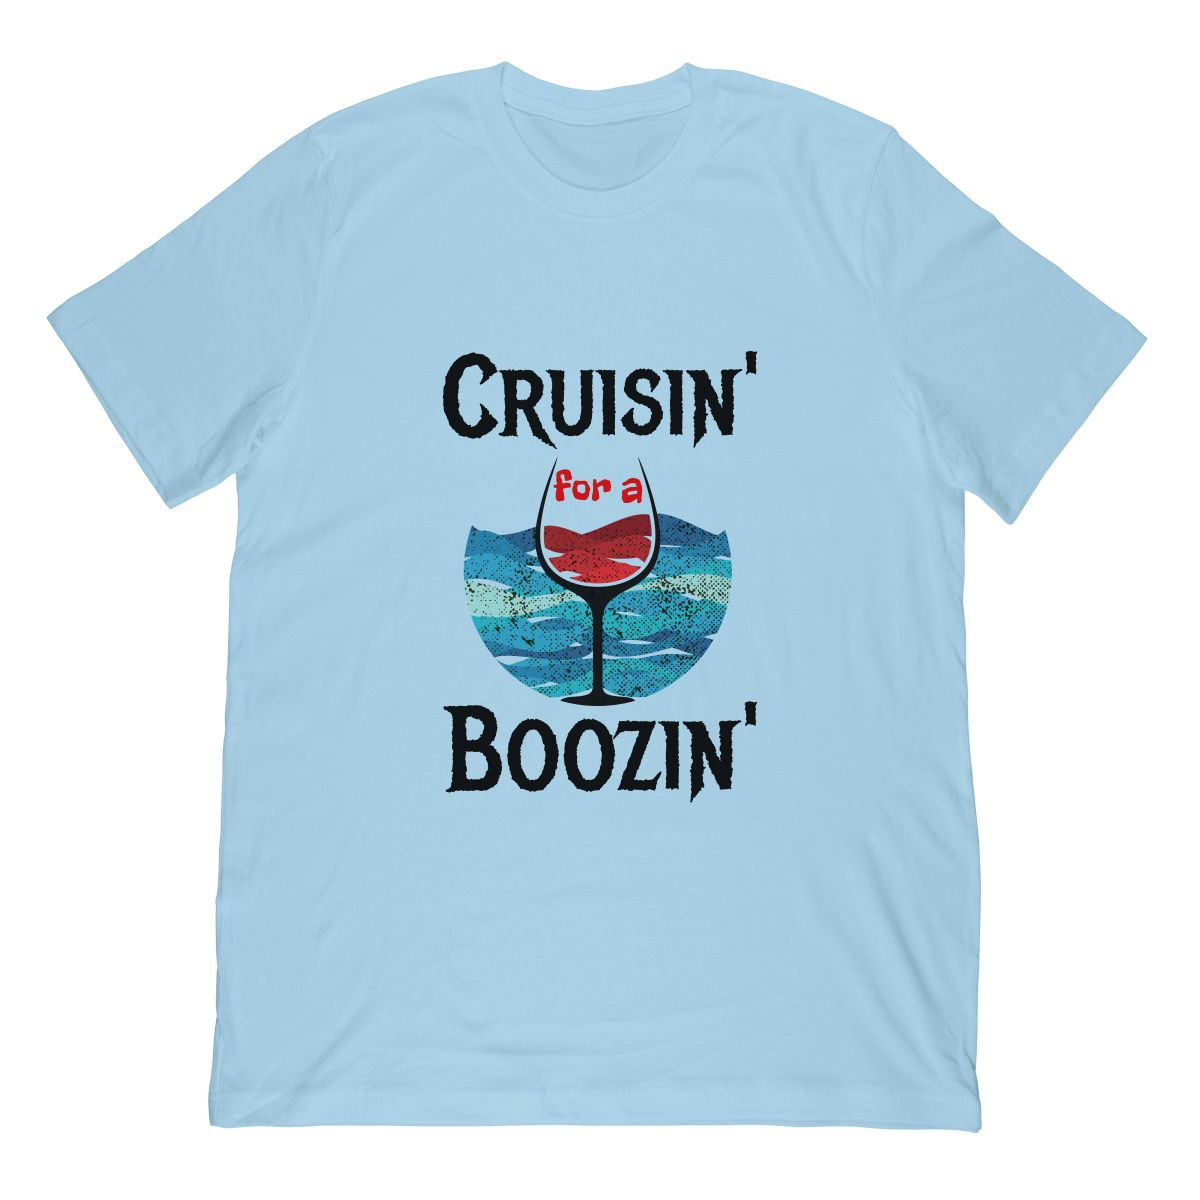 Cruisin' For A Boozin' Cruise Ship Tshirt